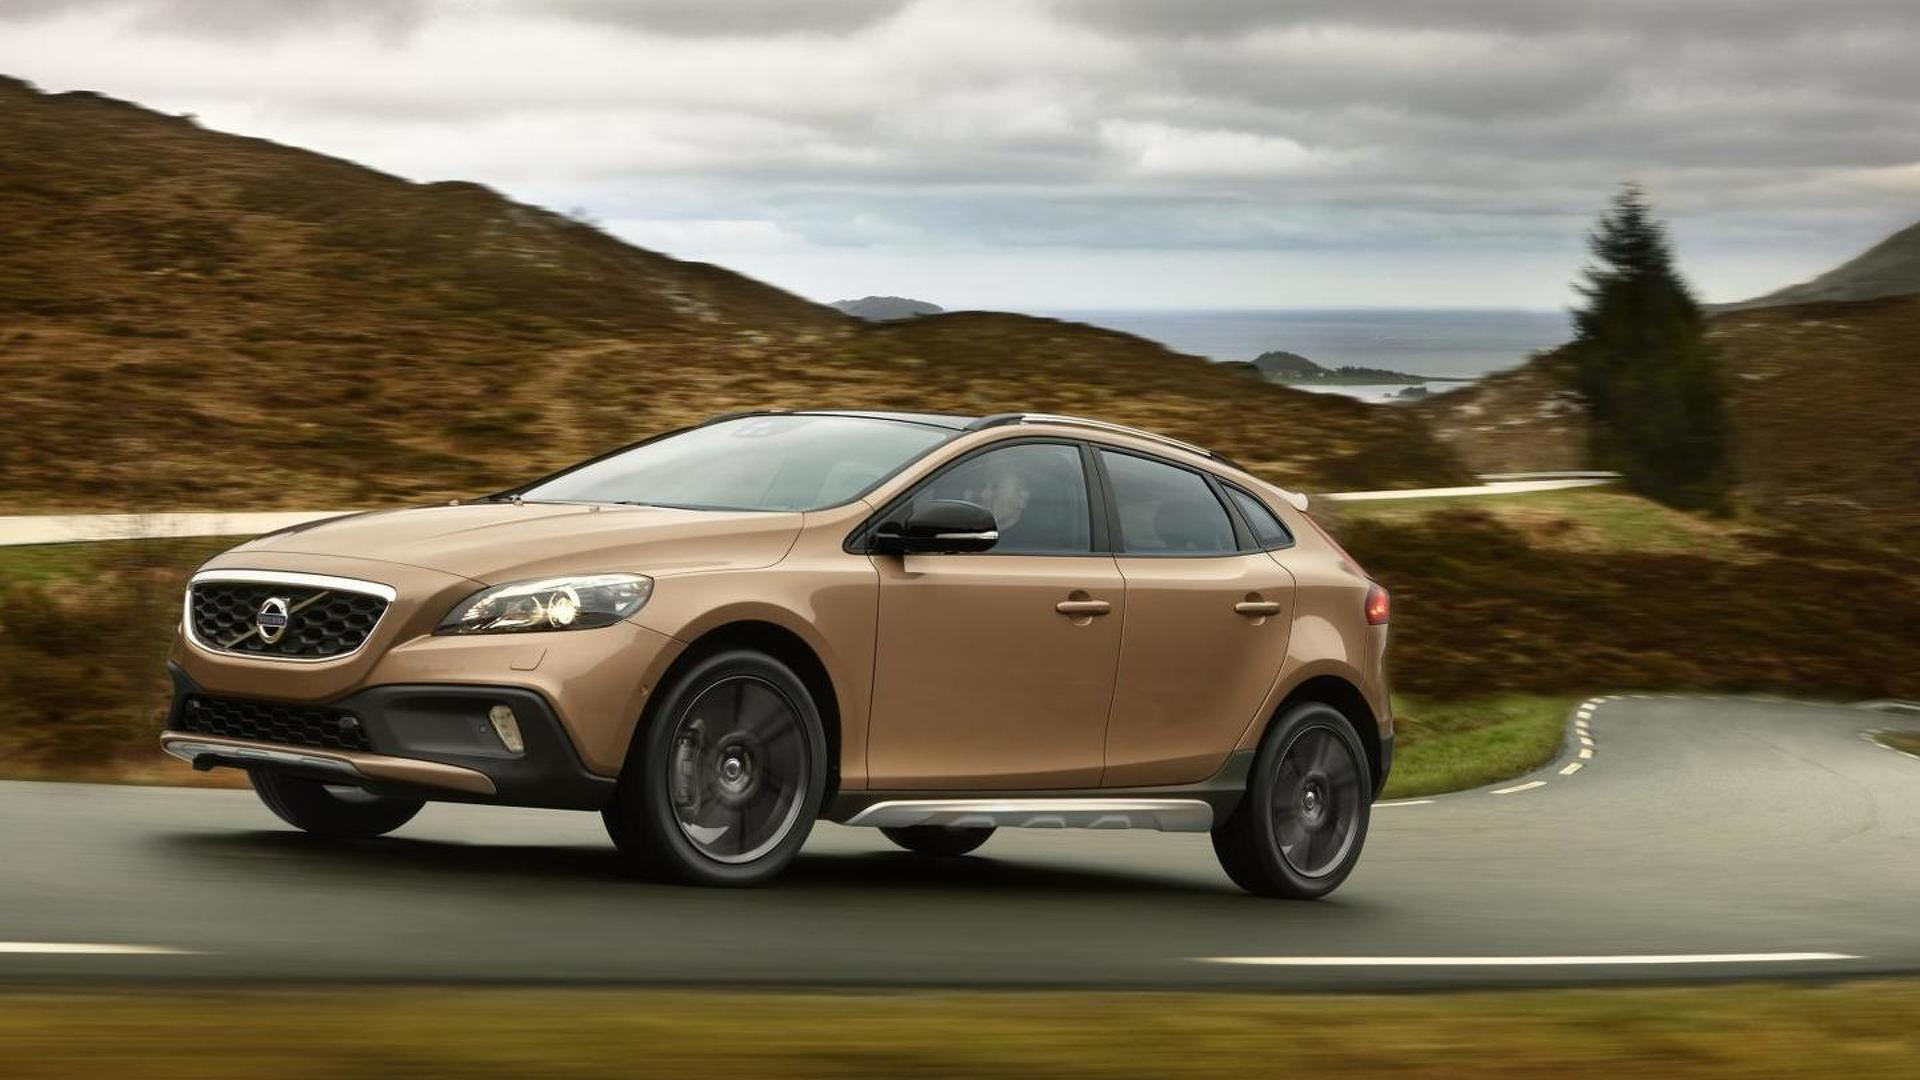 Volvo announces smaller crossover planned, likely the XC40